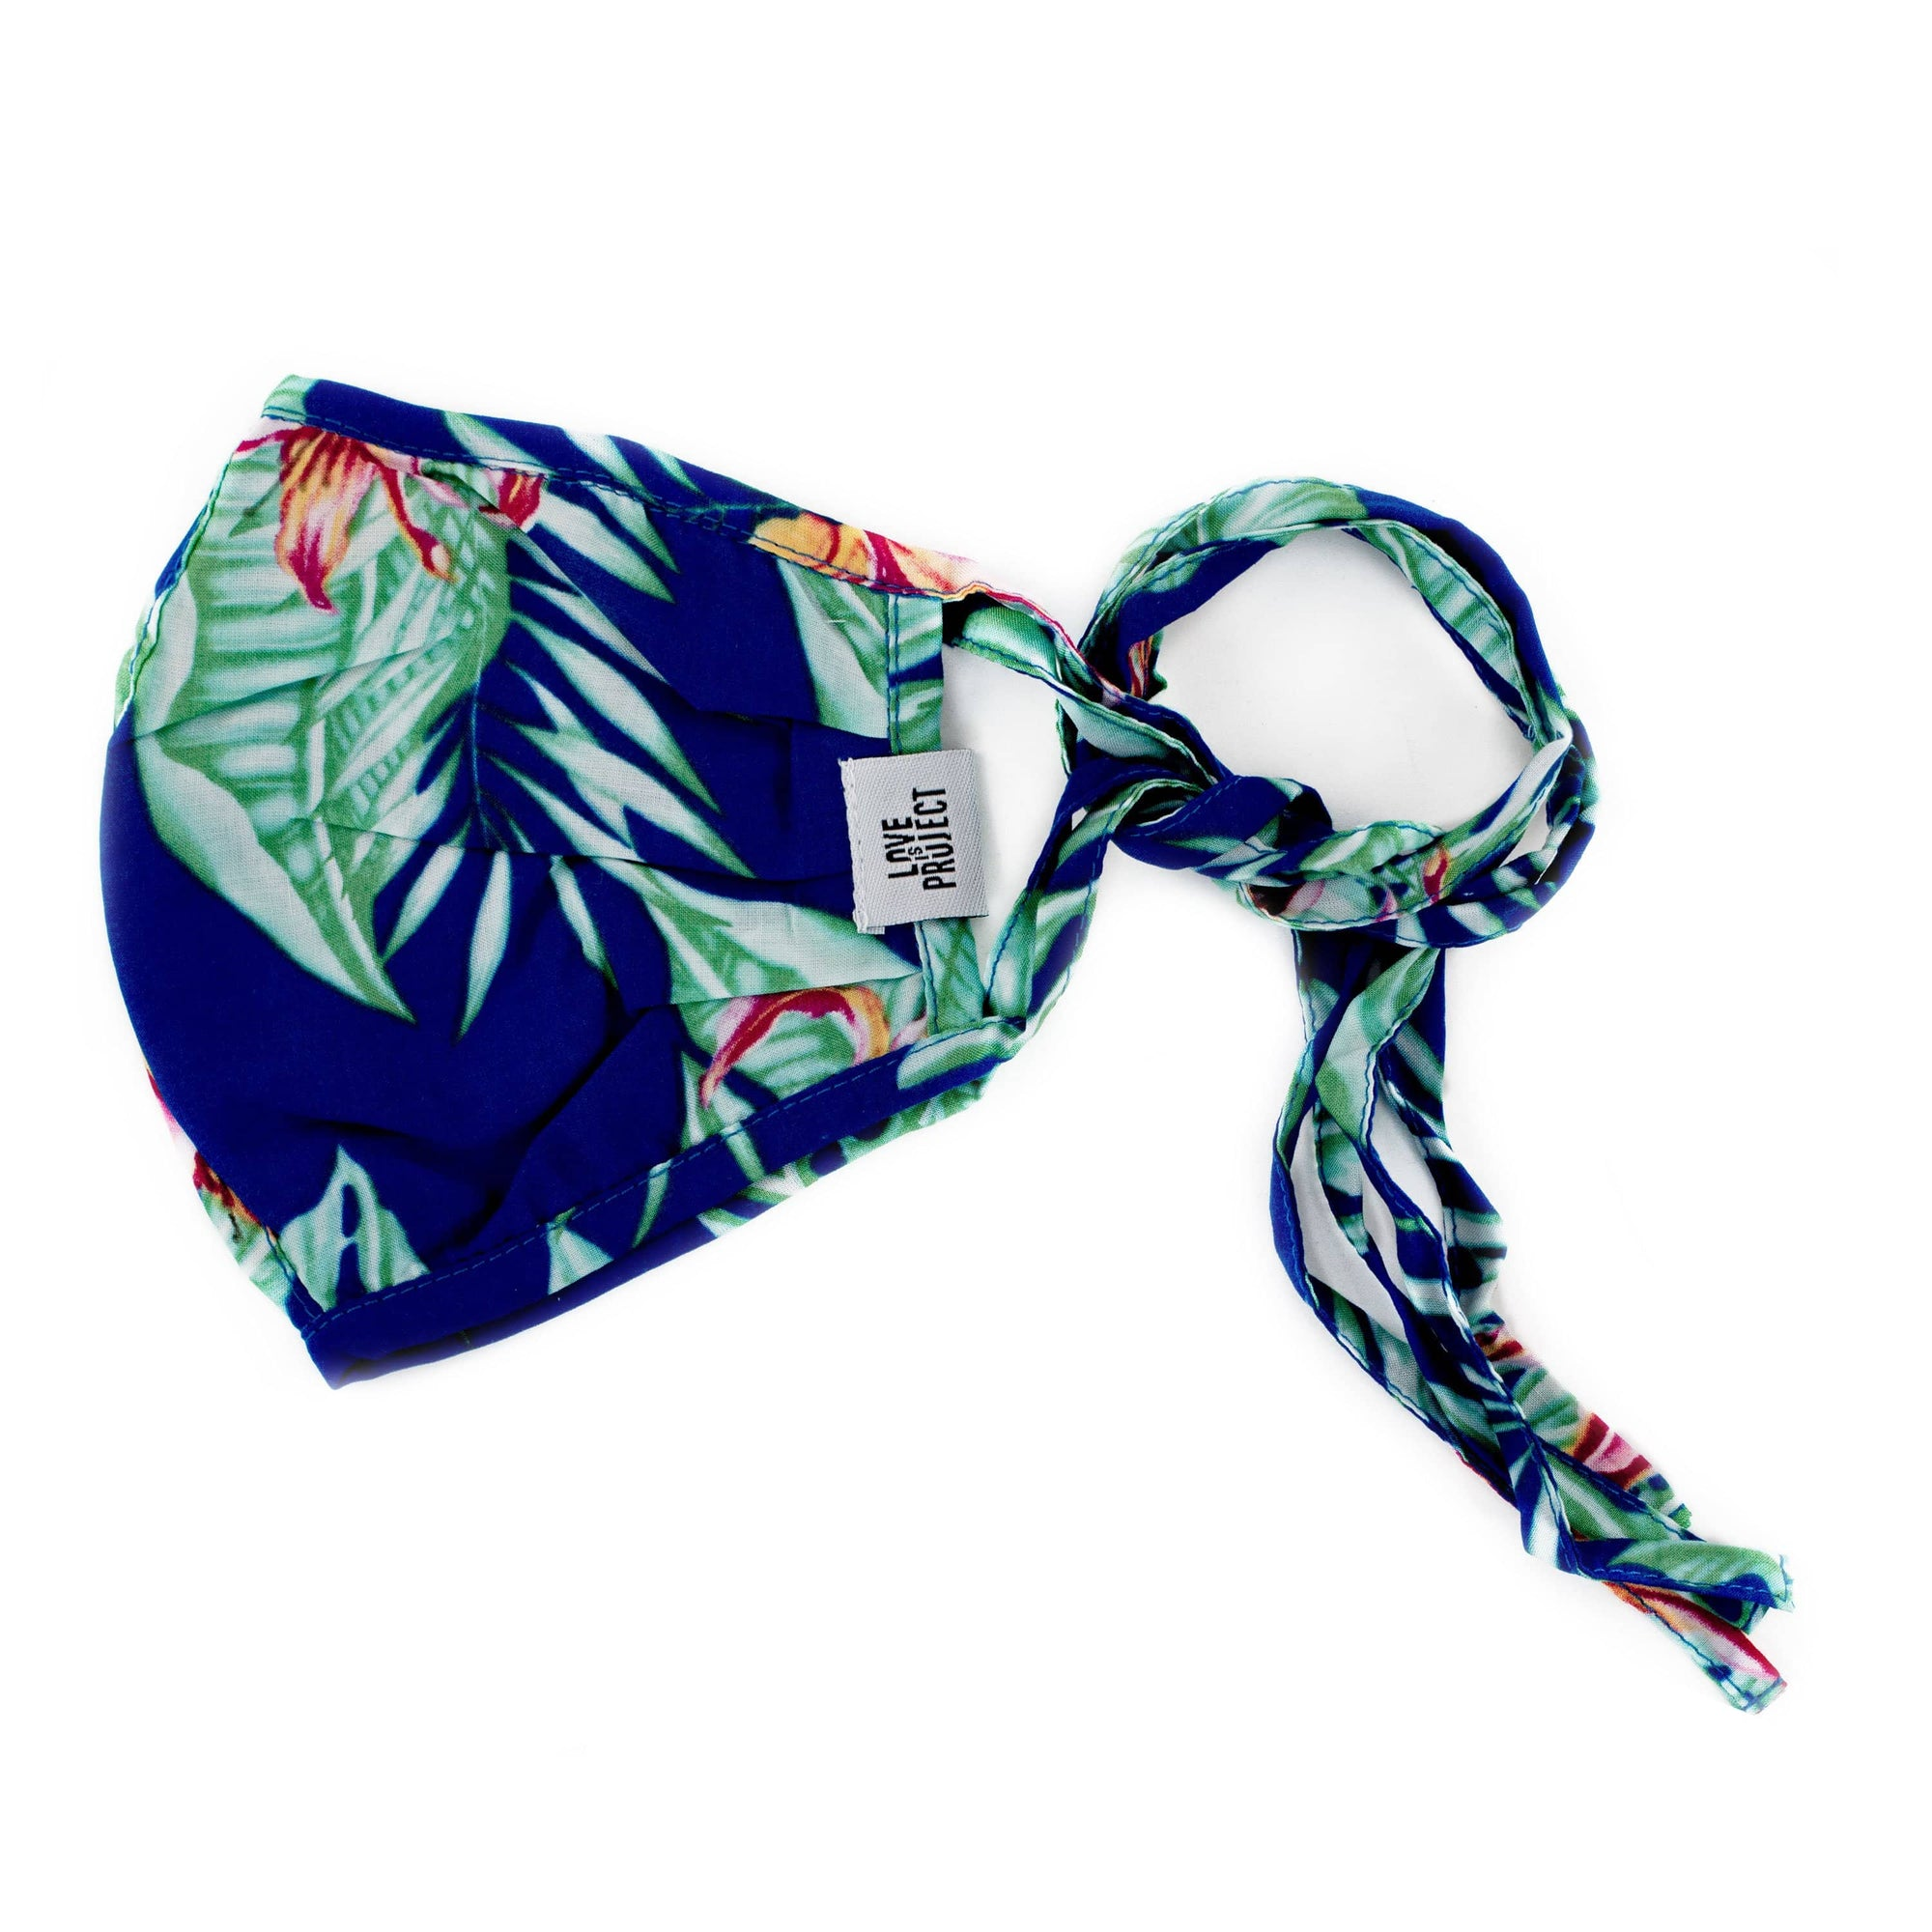 Aloha Tie Face Mask - Marine Blue